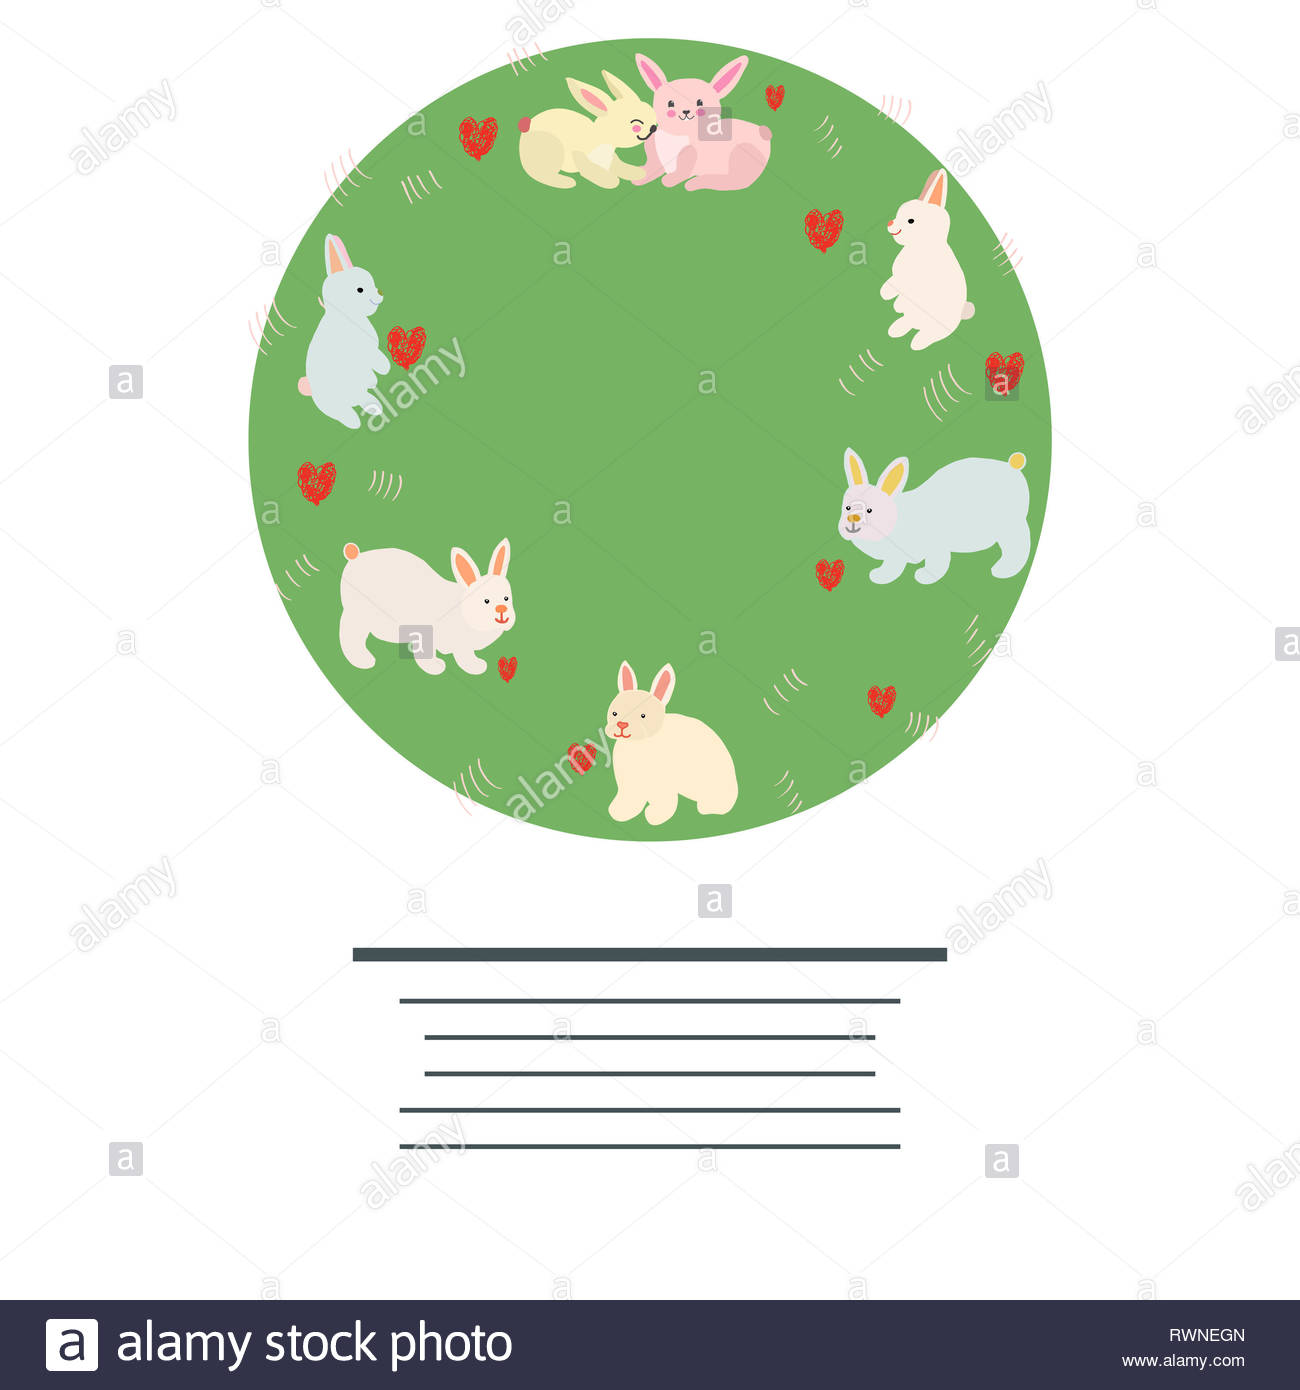 Cirlce with cute bunnies and red hearts. Space for your text. Flat style design. Poster vector design. Vector illustration. - Stock Image